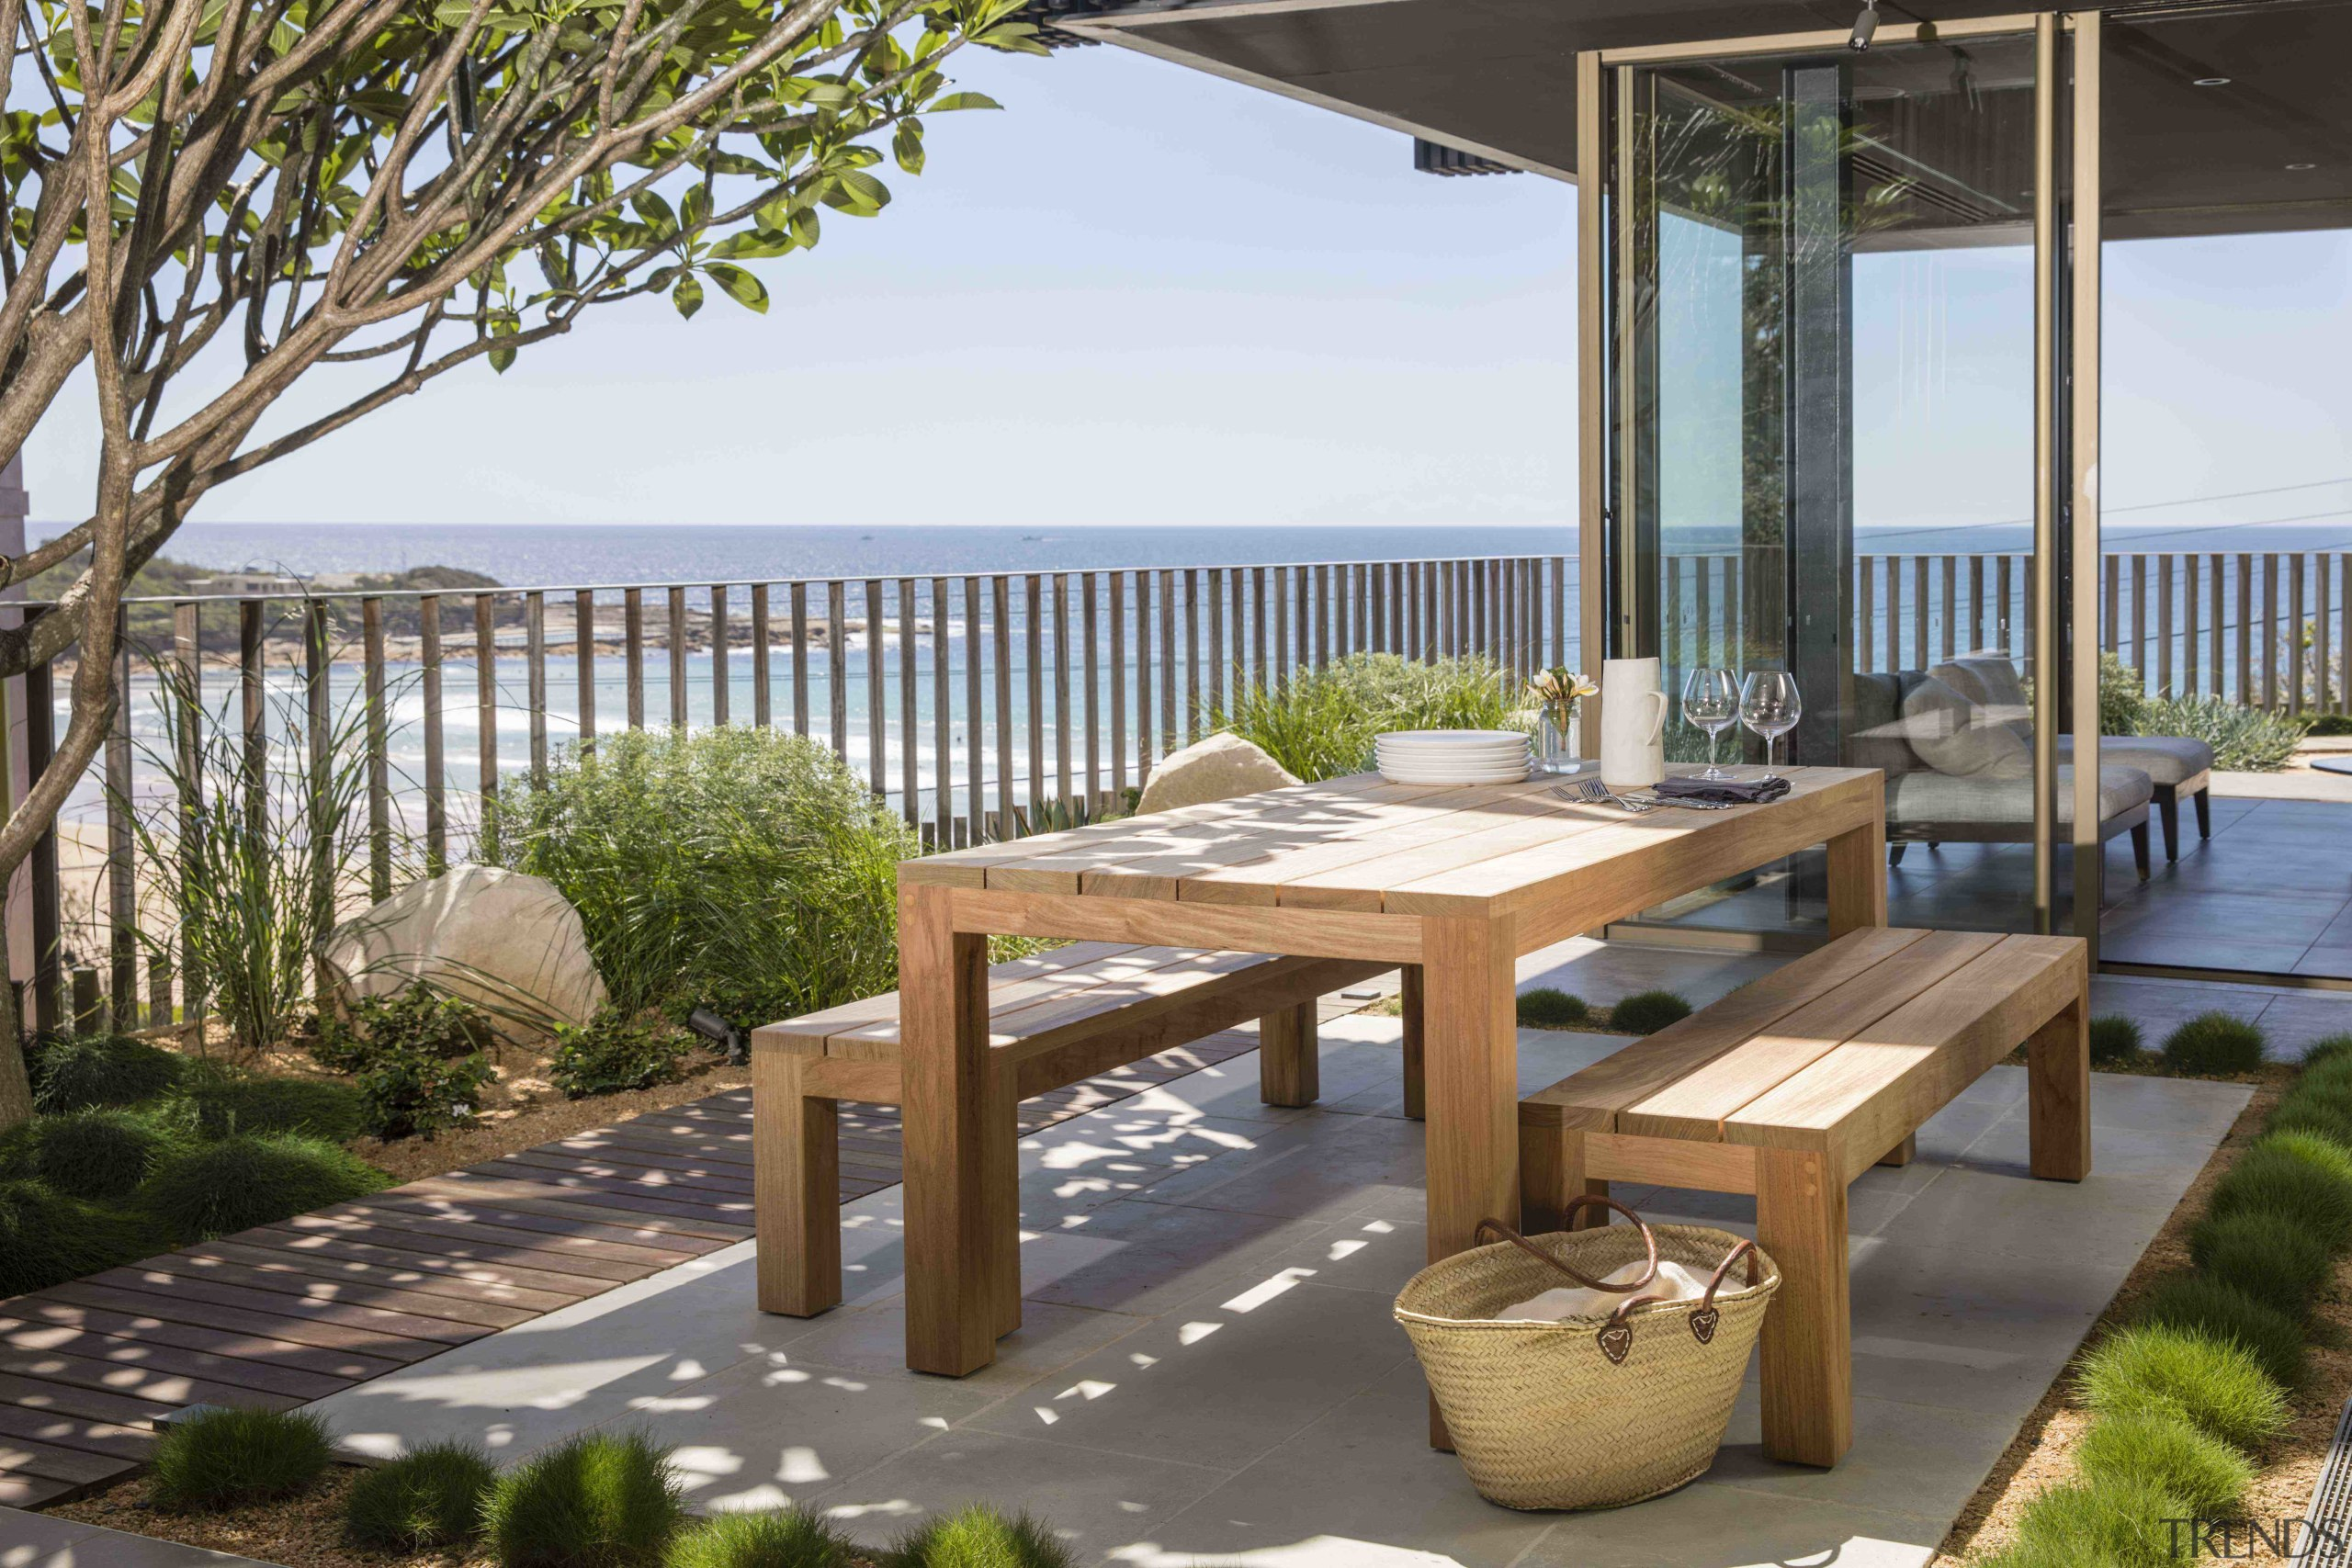 5 top tips for a green rooftop oasis building, deck, furniture, home, house, interior design, landscape, landscaping, patio, pavilion, porch, property, real estate, roof, room, shade, table, white, brown